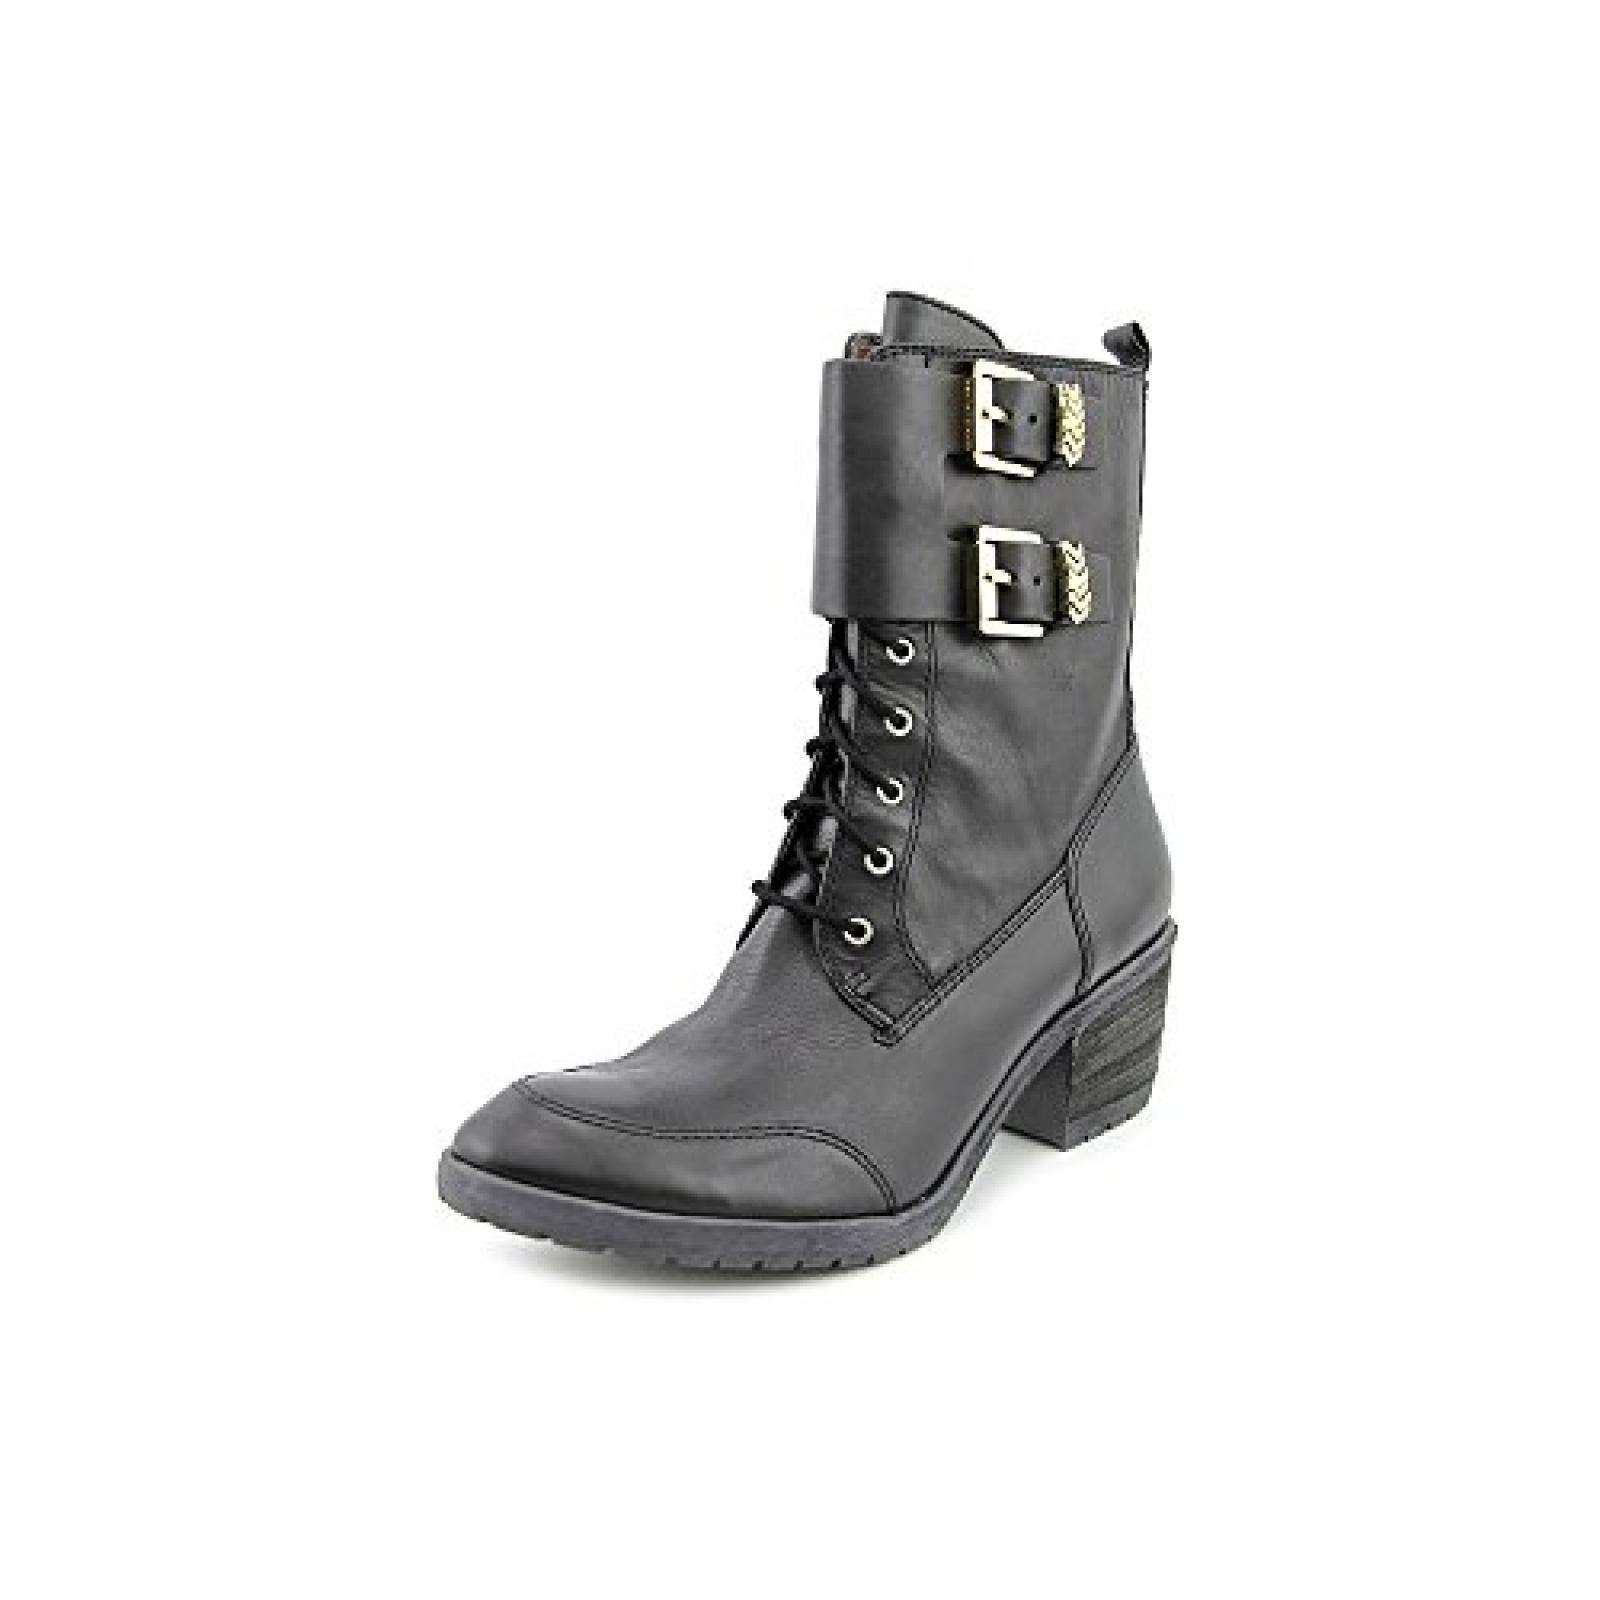 Donald J Pliner Danti-06 Damen Mode Mitte Calf Stiefel Neu/Display